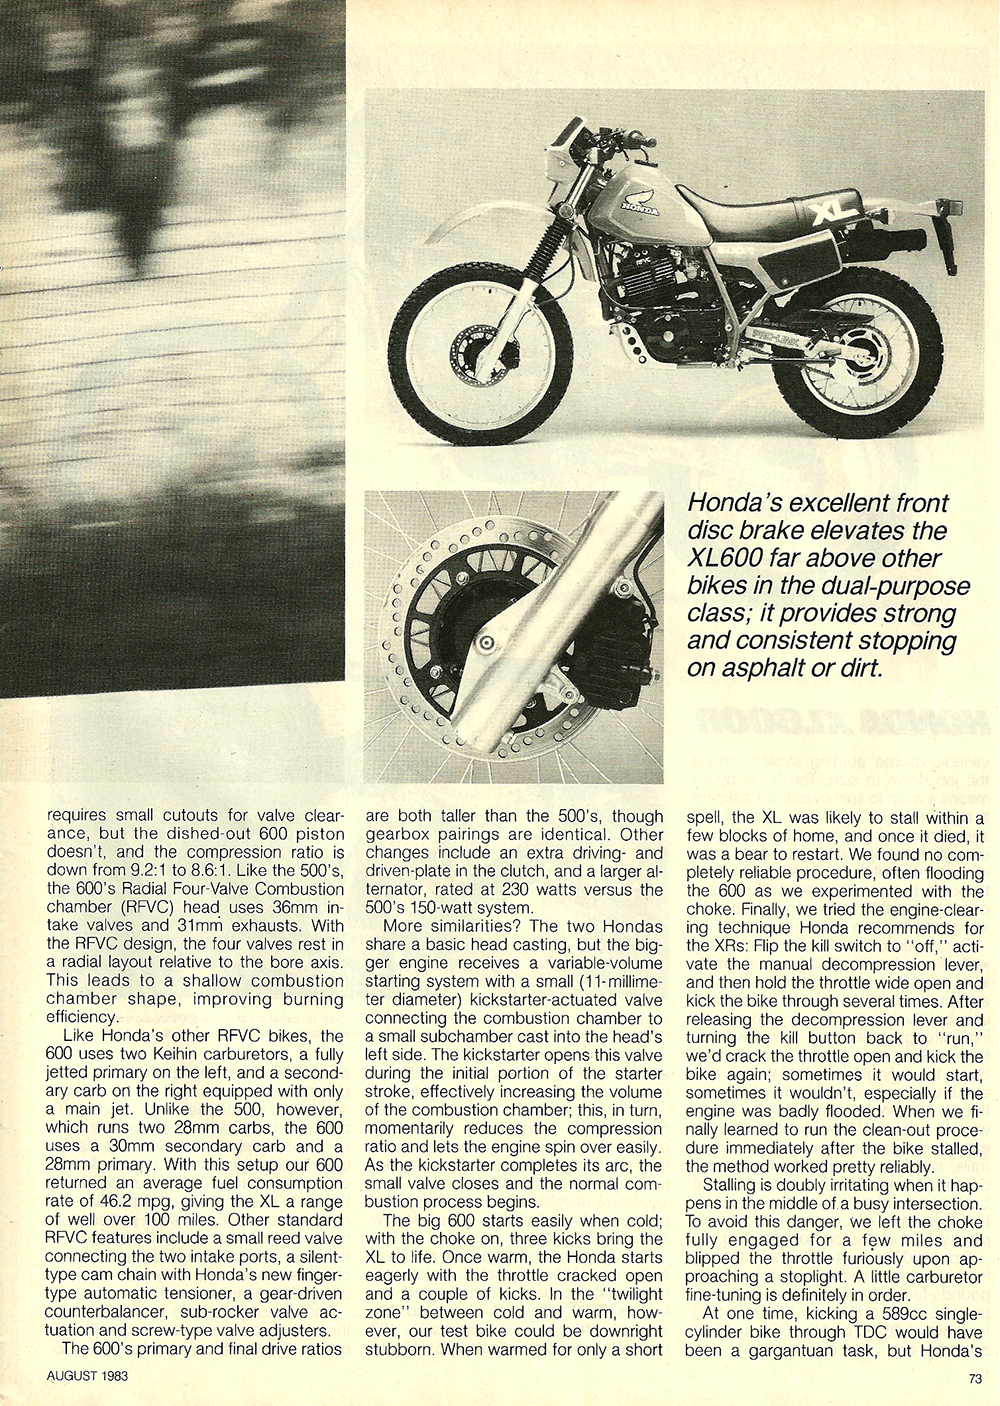 1983 Honda XL600R road test 4.jpg